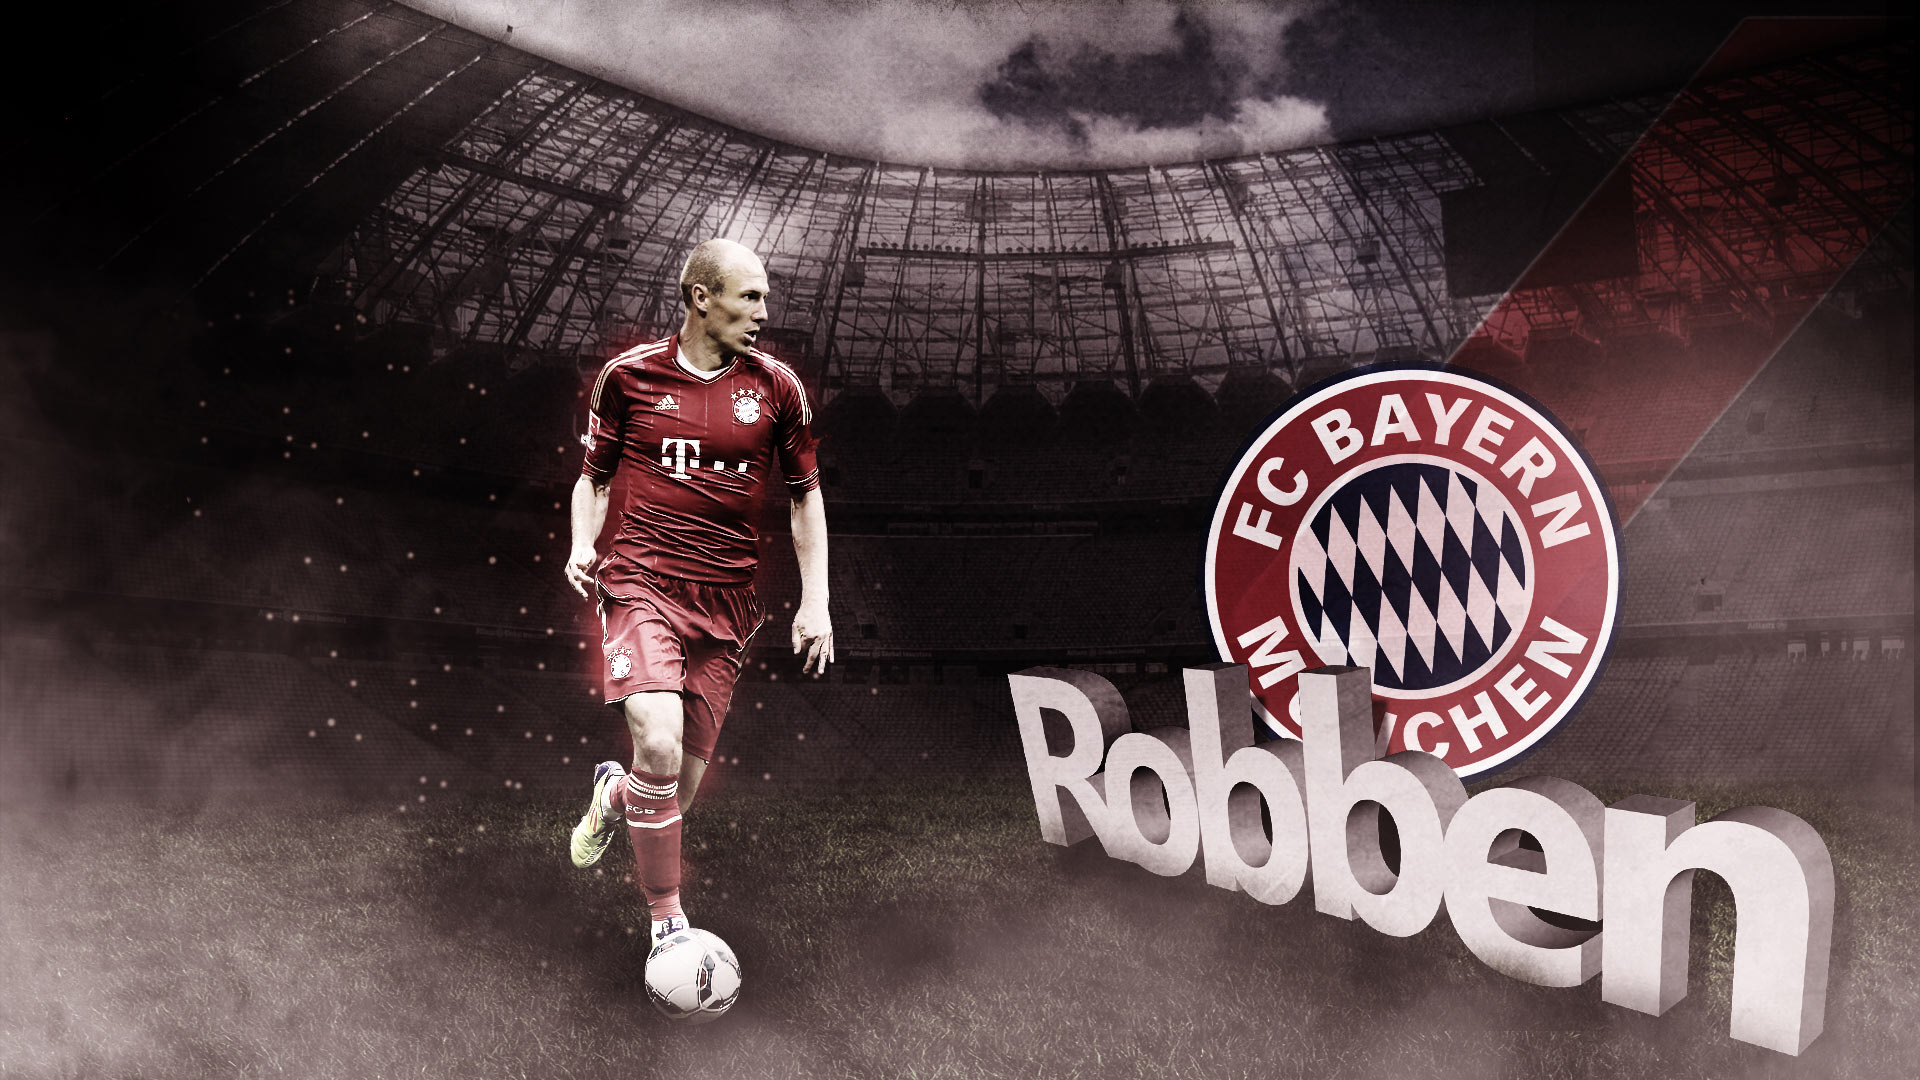 Arjen Robben Wallpaper HD 4